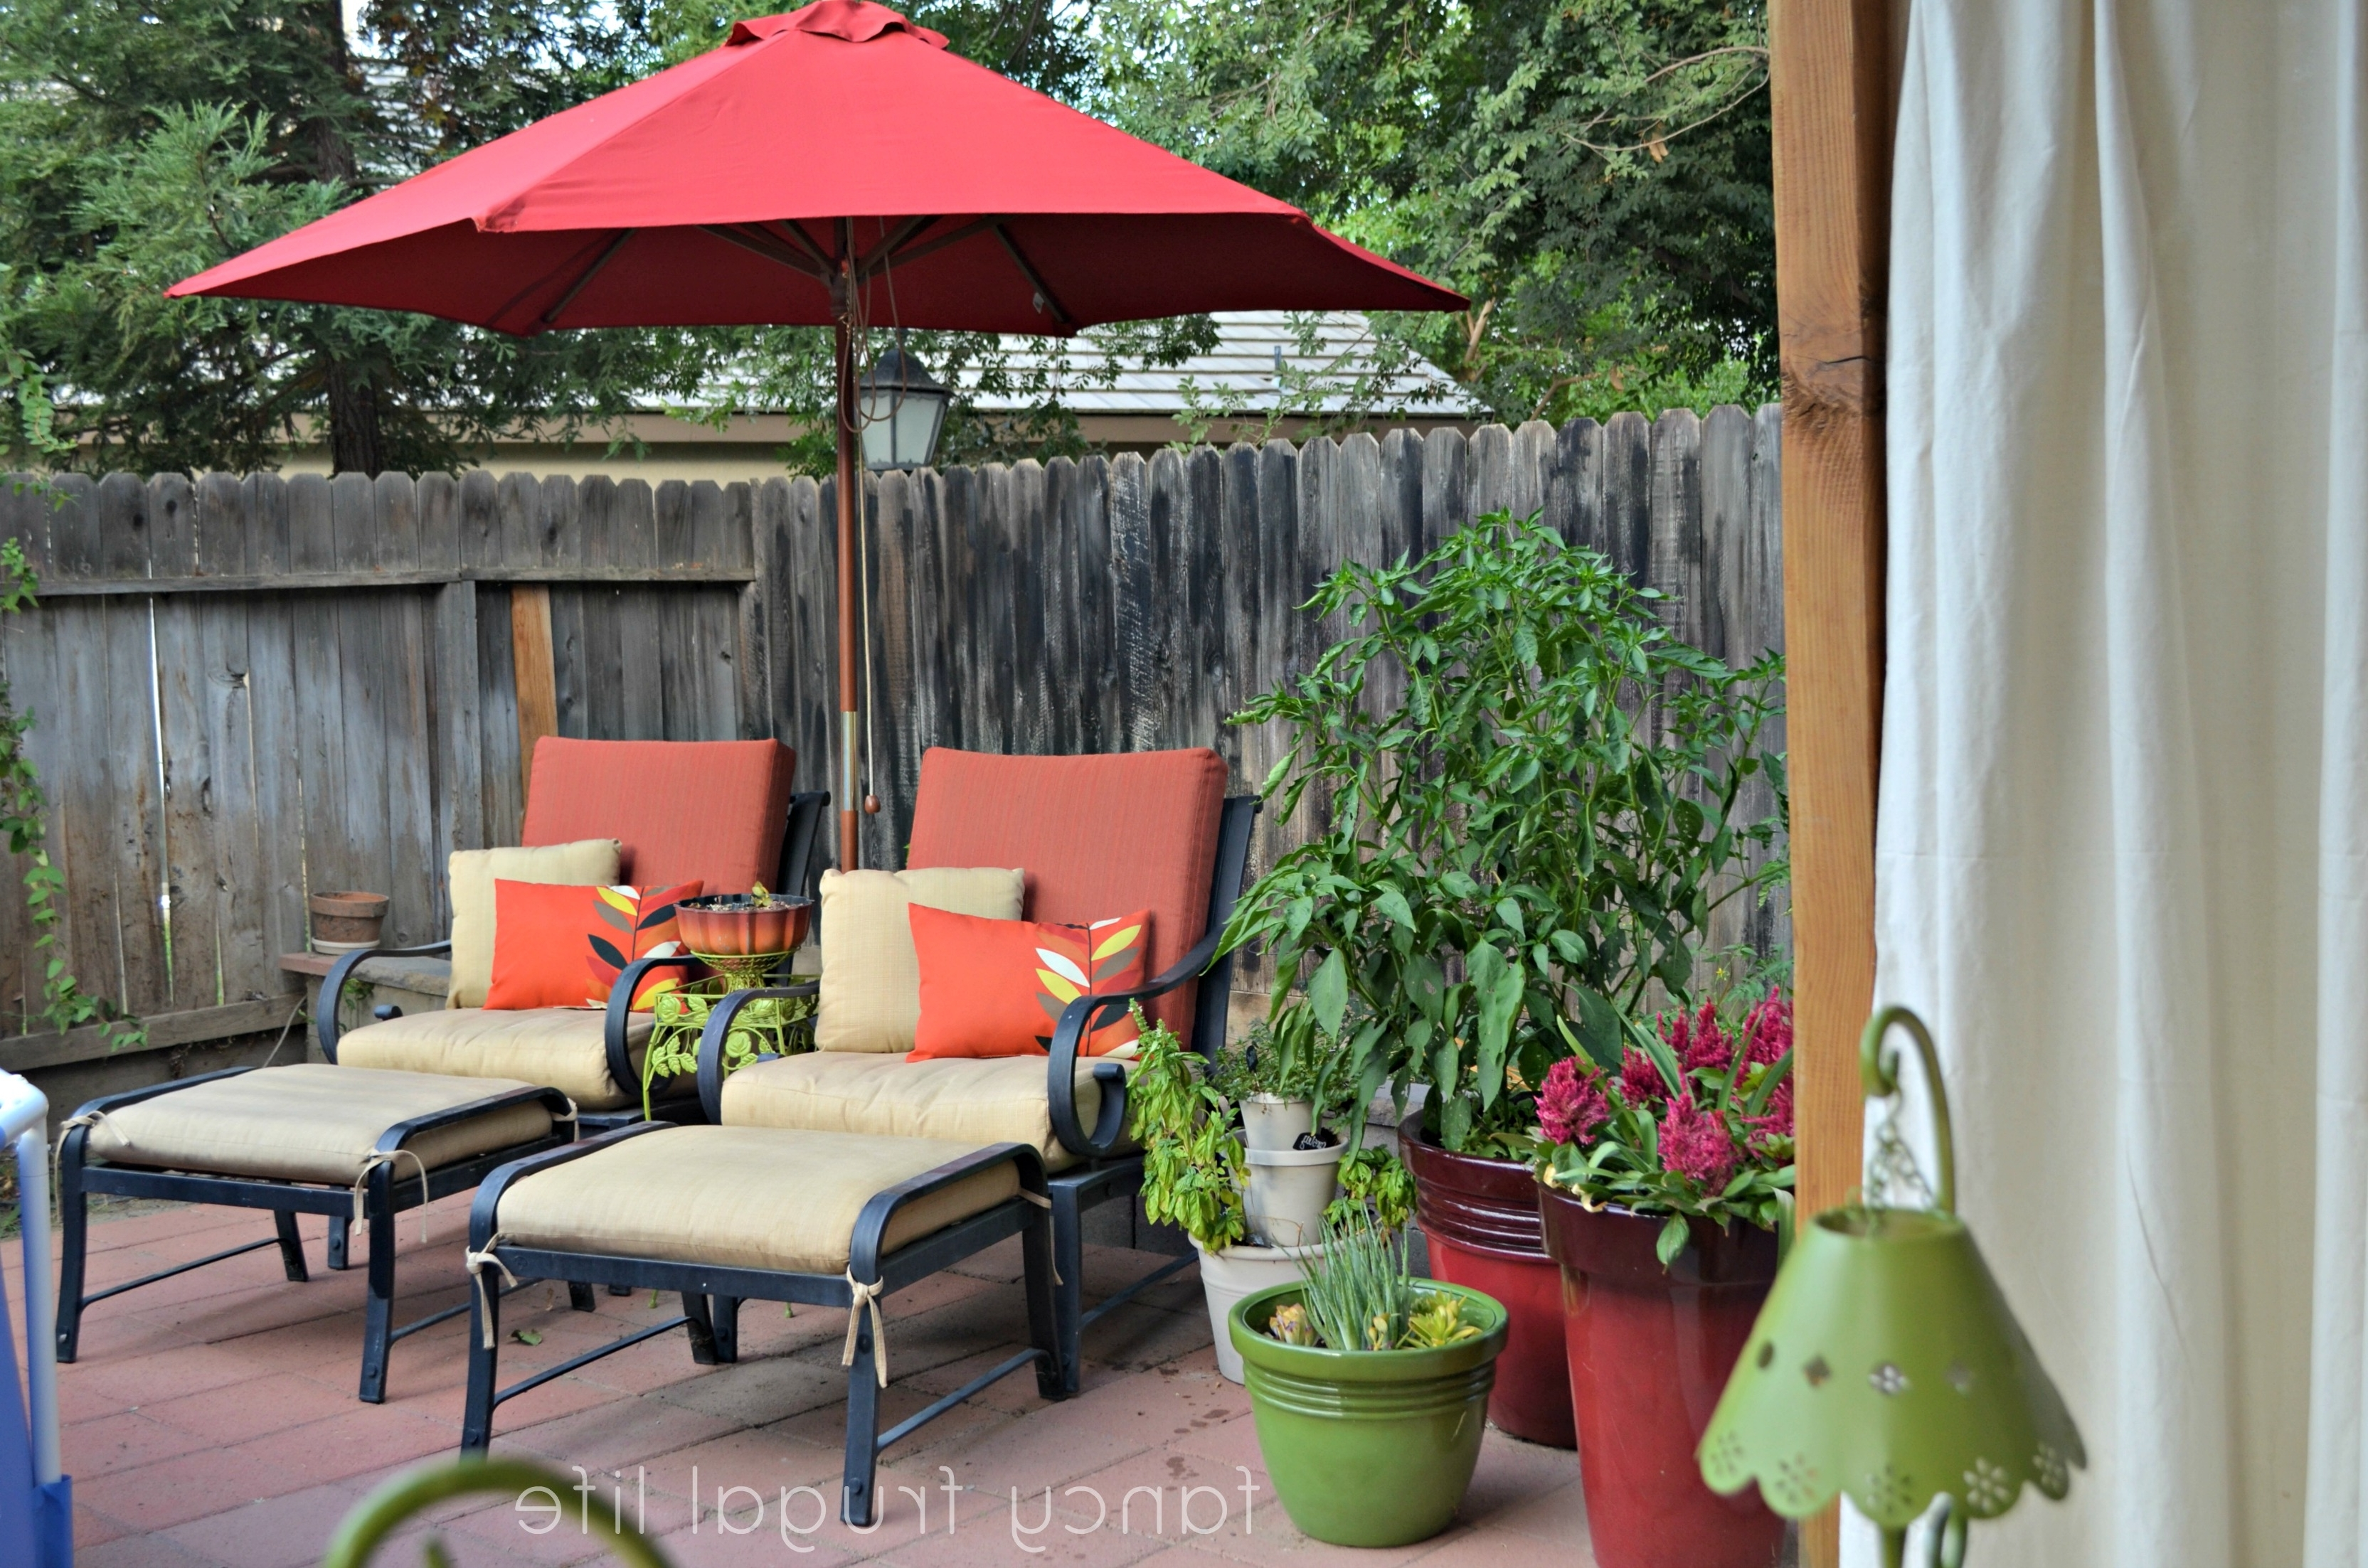 Small Patio Tables With Umbrellas Intended For Popular Garden: Enchanting Outdoor Patio Decor Ideas With Patio Umbrellas (View 14 of 20)